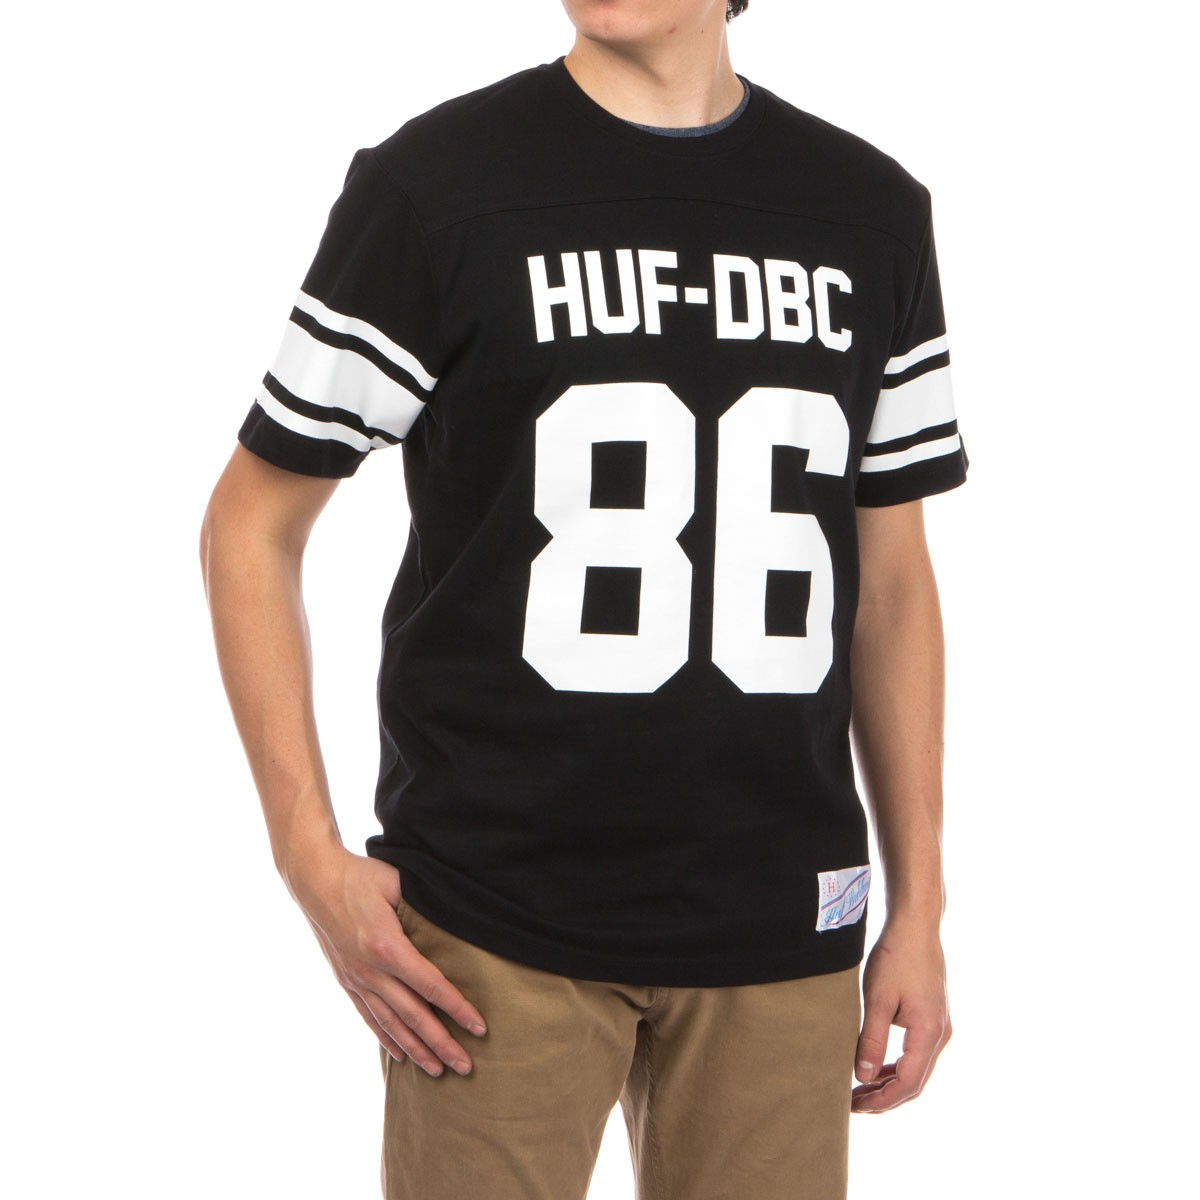 huf-wrecking-crew-football-jersey-shirt-black-1.1506675090.jpg 5b7820a70